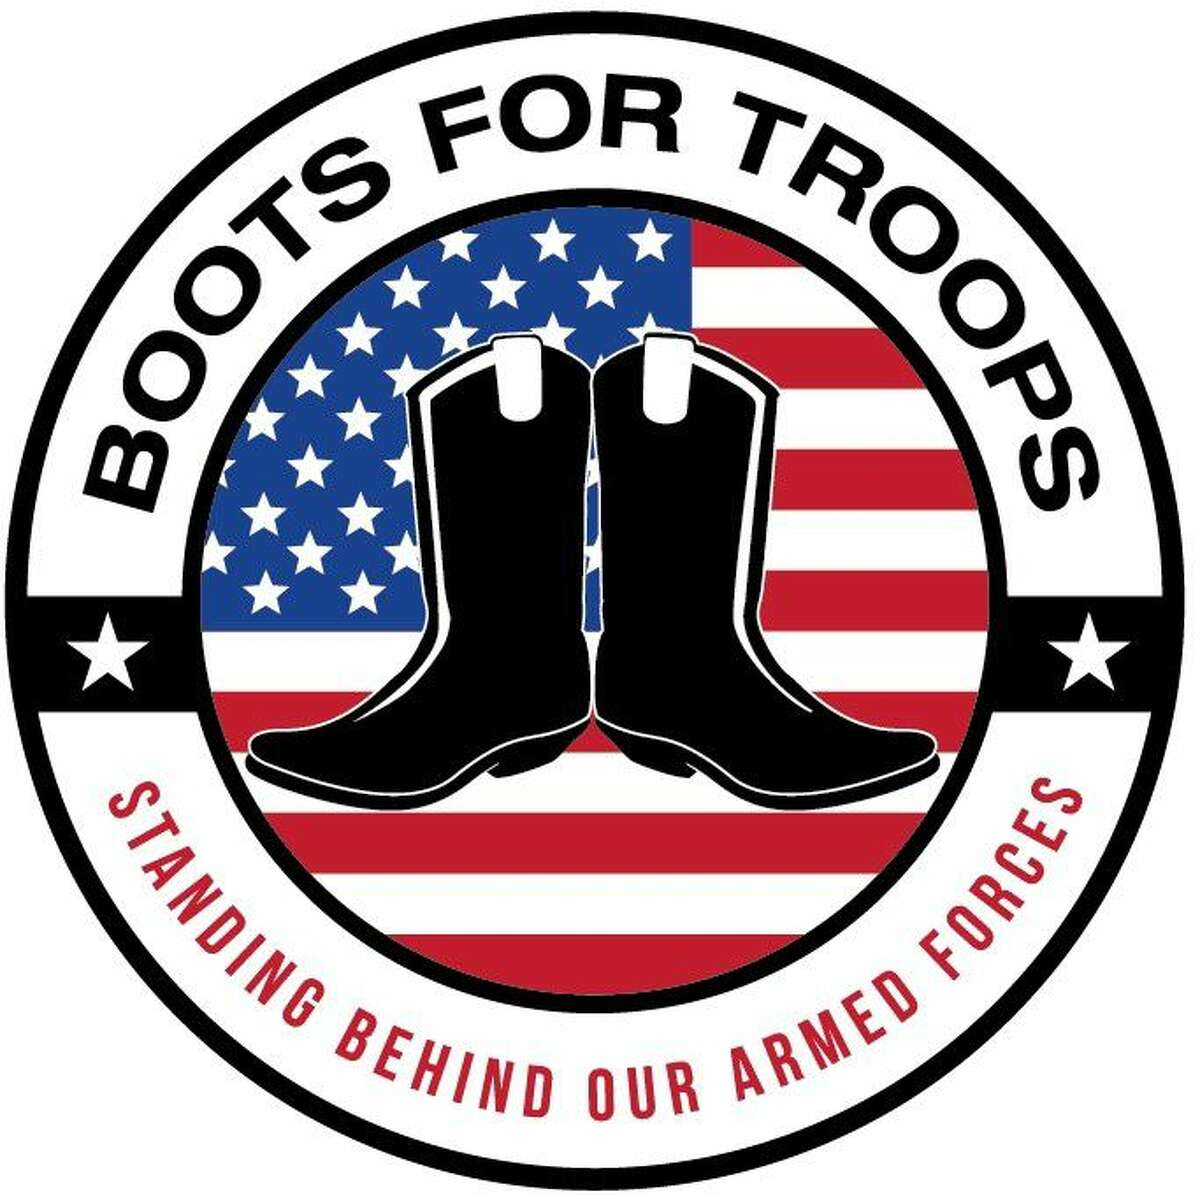 Boots for Troops provides care packages that include new boots.